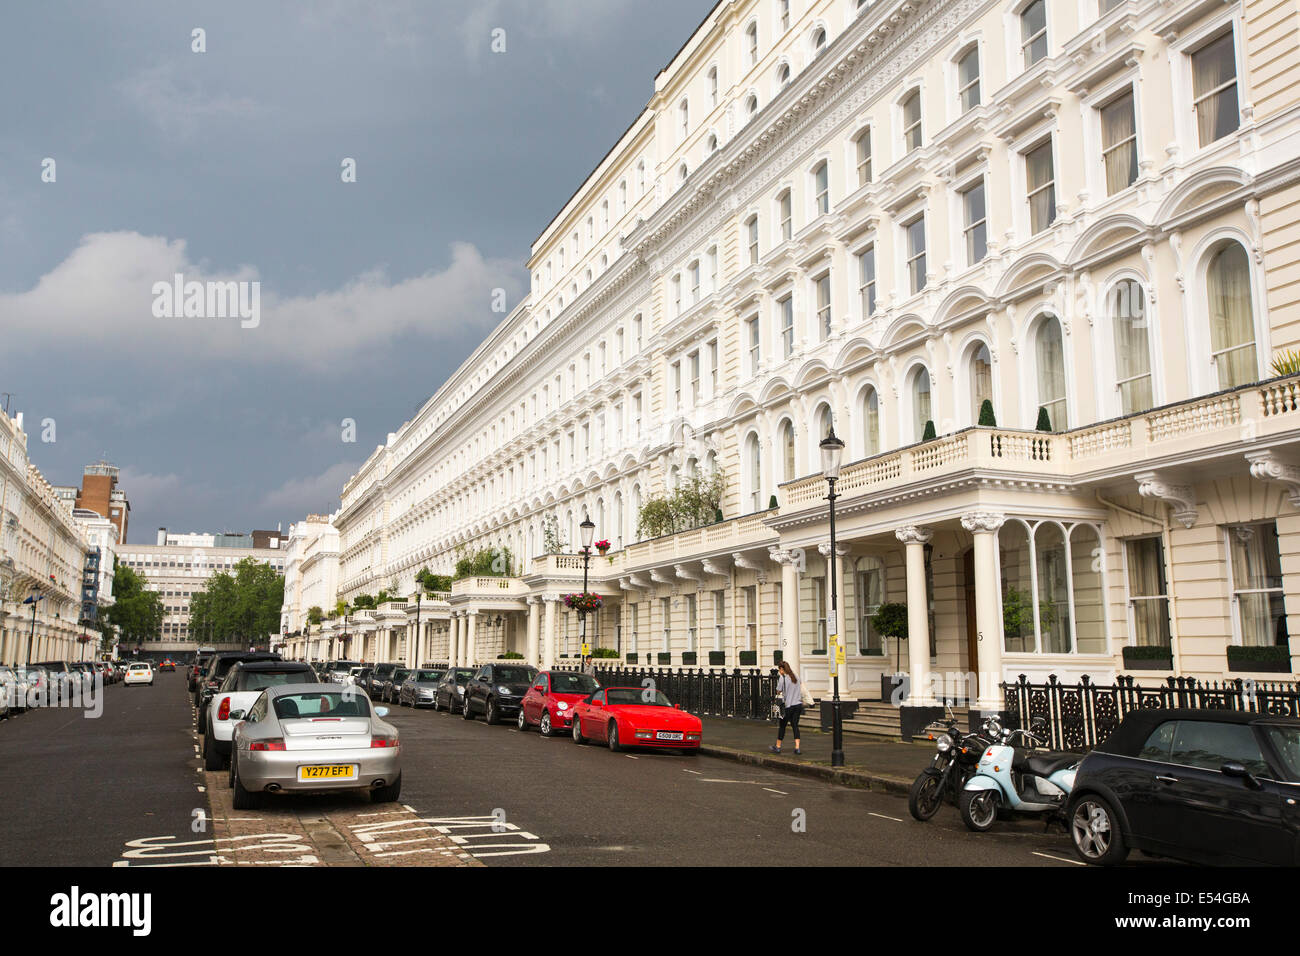 Queens Gate terrace, an exclusive address of very expensive houses in SW7 , London, UK. - Stock Image